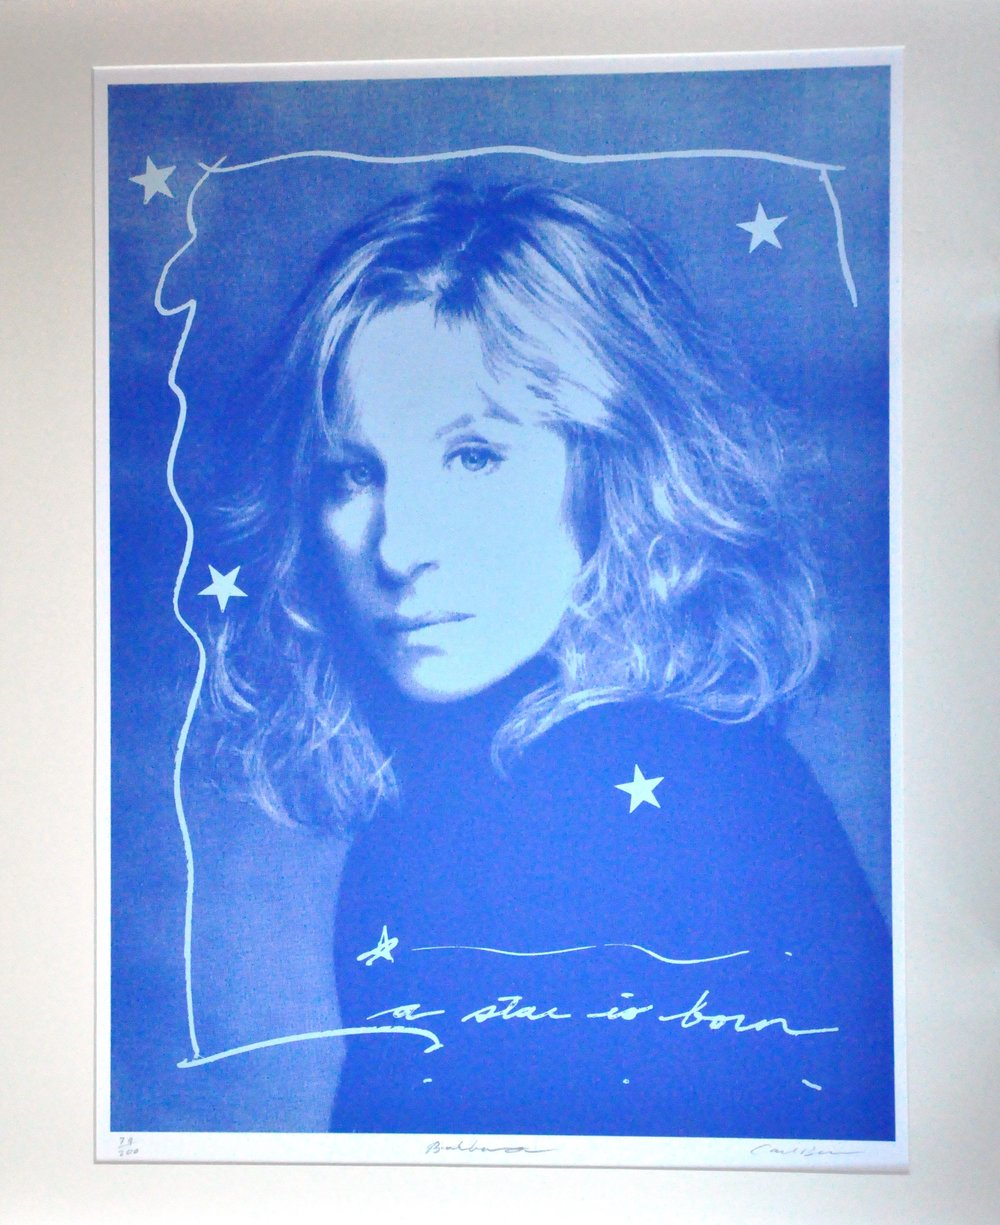 "Barbara,  2000, Carl Beam, serigraph on paper, edition 79/200, 30"" x 22"", 2006.05.03, gift of the Milton Winberg Foundation"